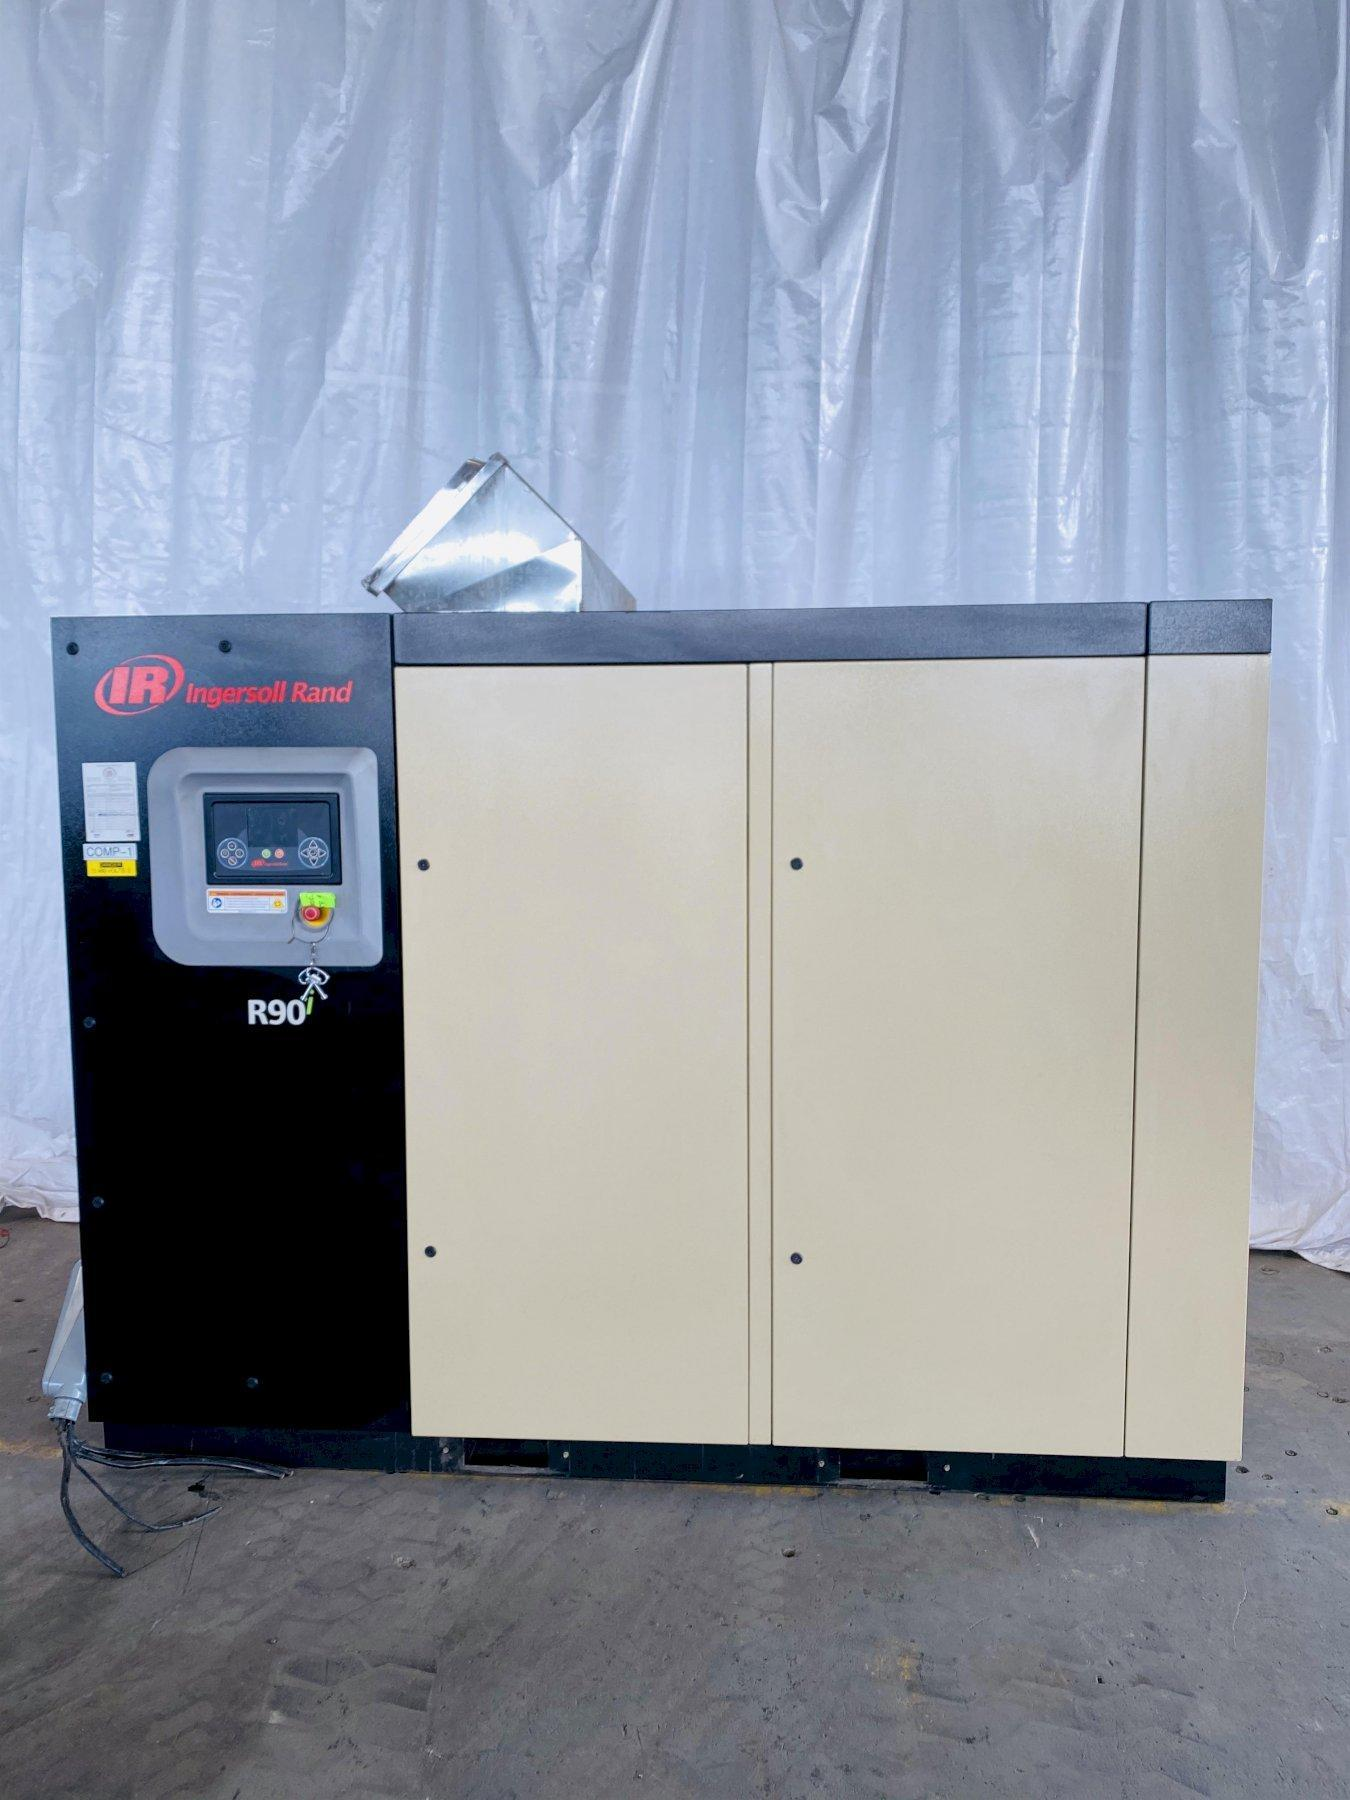 125 HP INGERSOLL-RAND MODEL R90I-A125 ROTARY SCREW AIR COMPRESSOR. STOCK # 0631320